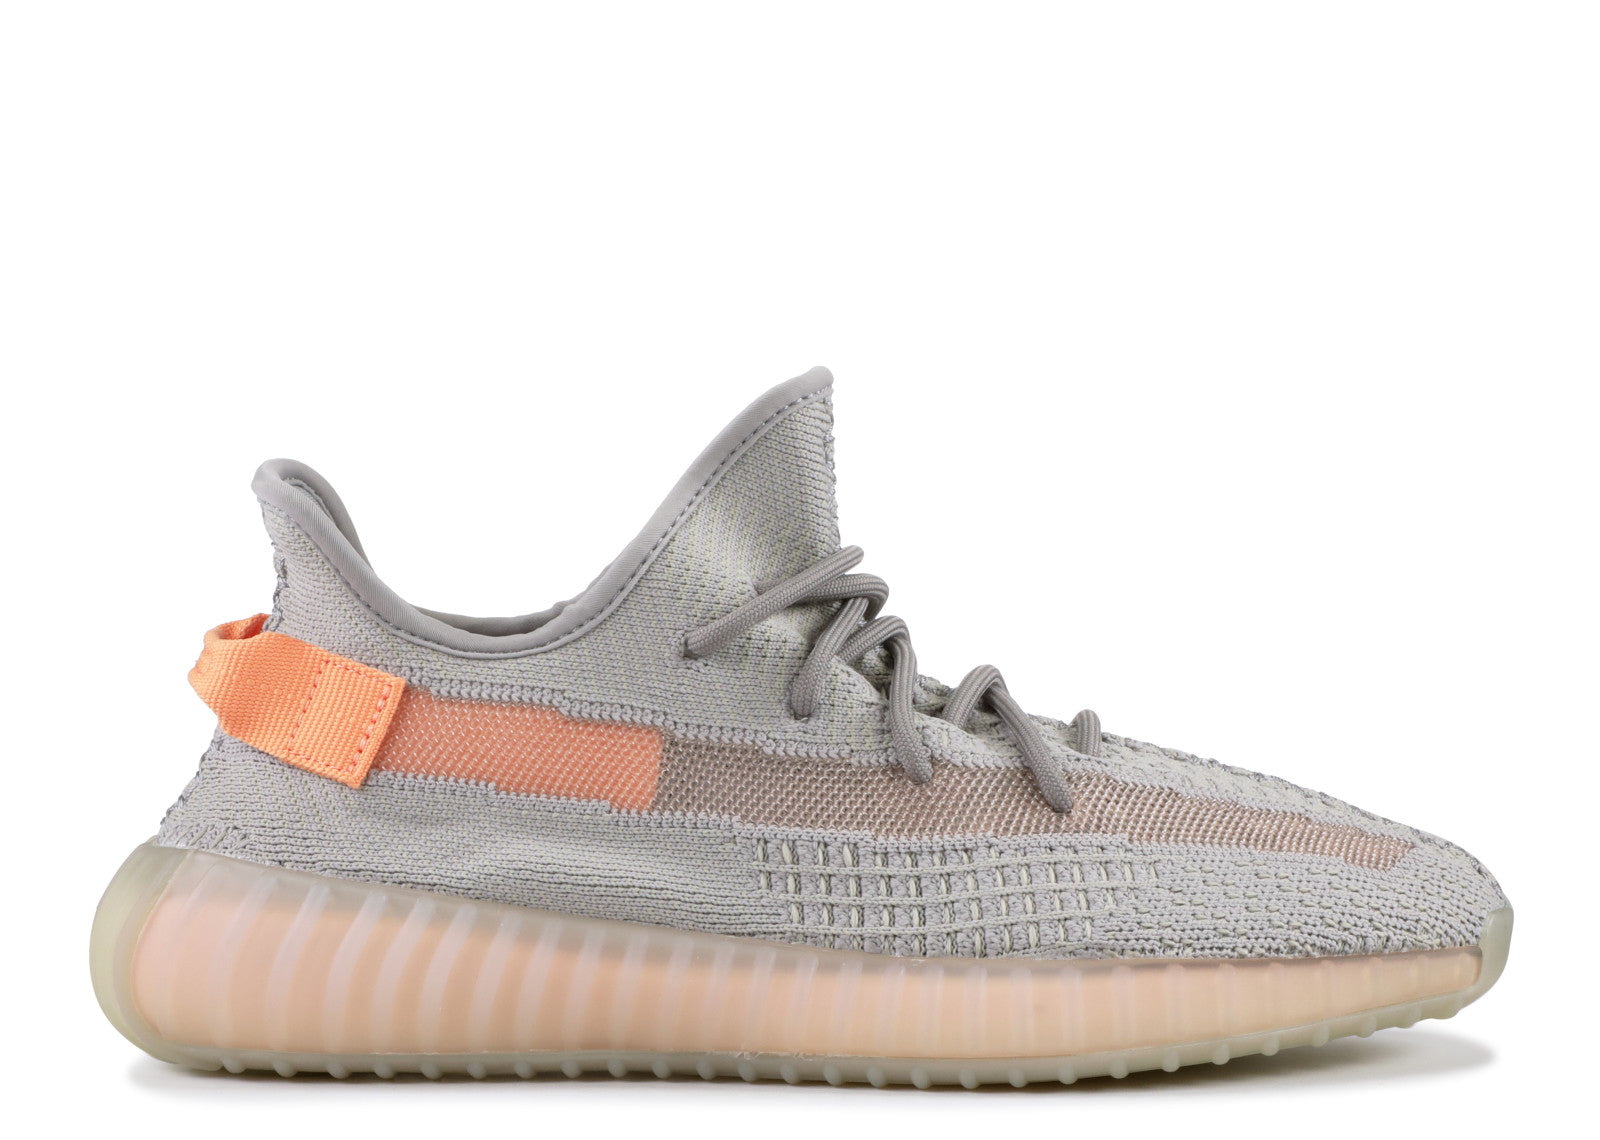 Adidas Yeezy Boost 350 V2 'True Form'